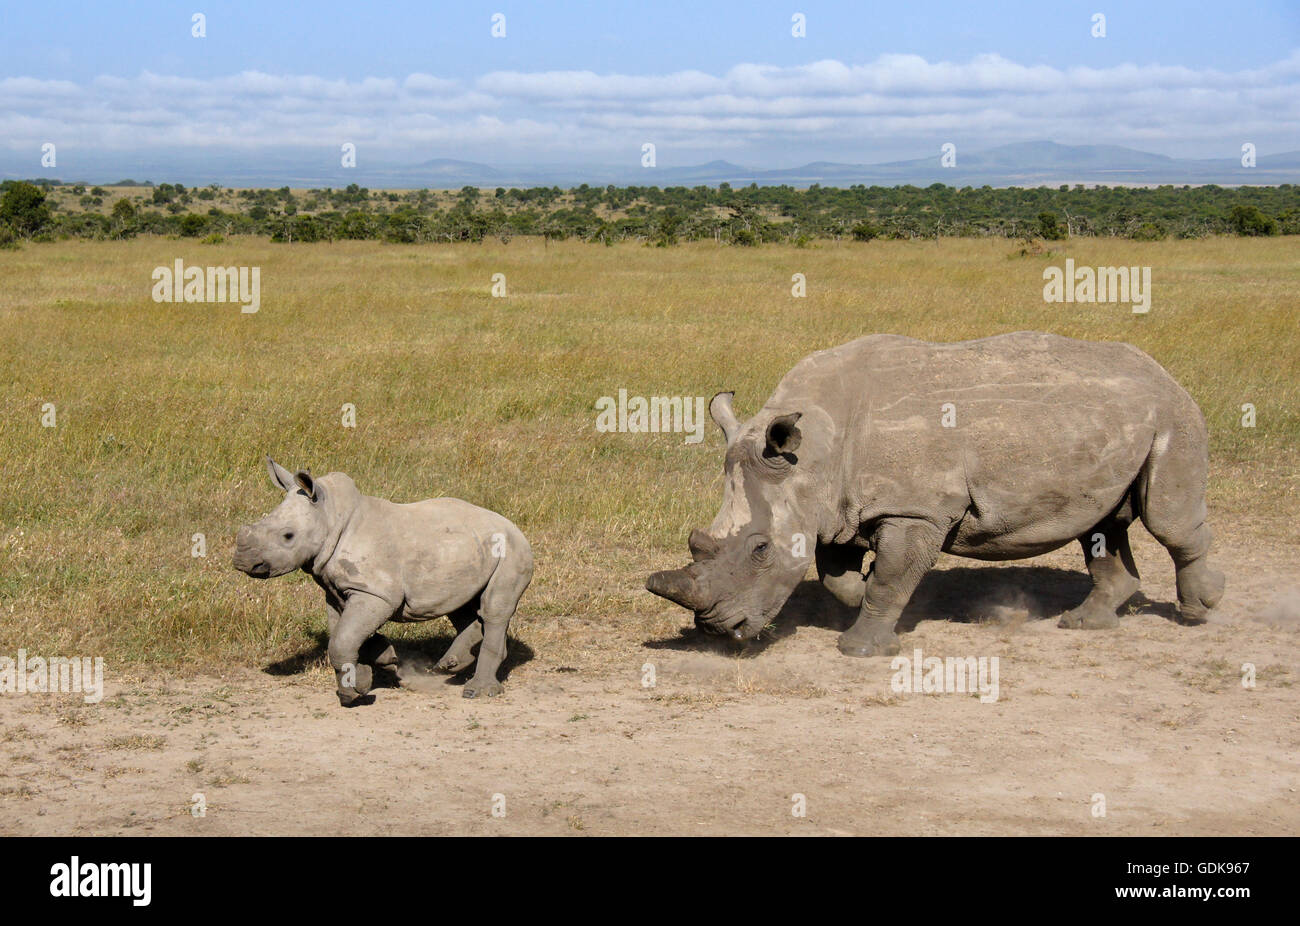 White rhinoceros with calf, Ol Pejeta Conservancy, Kenya - Stock Image